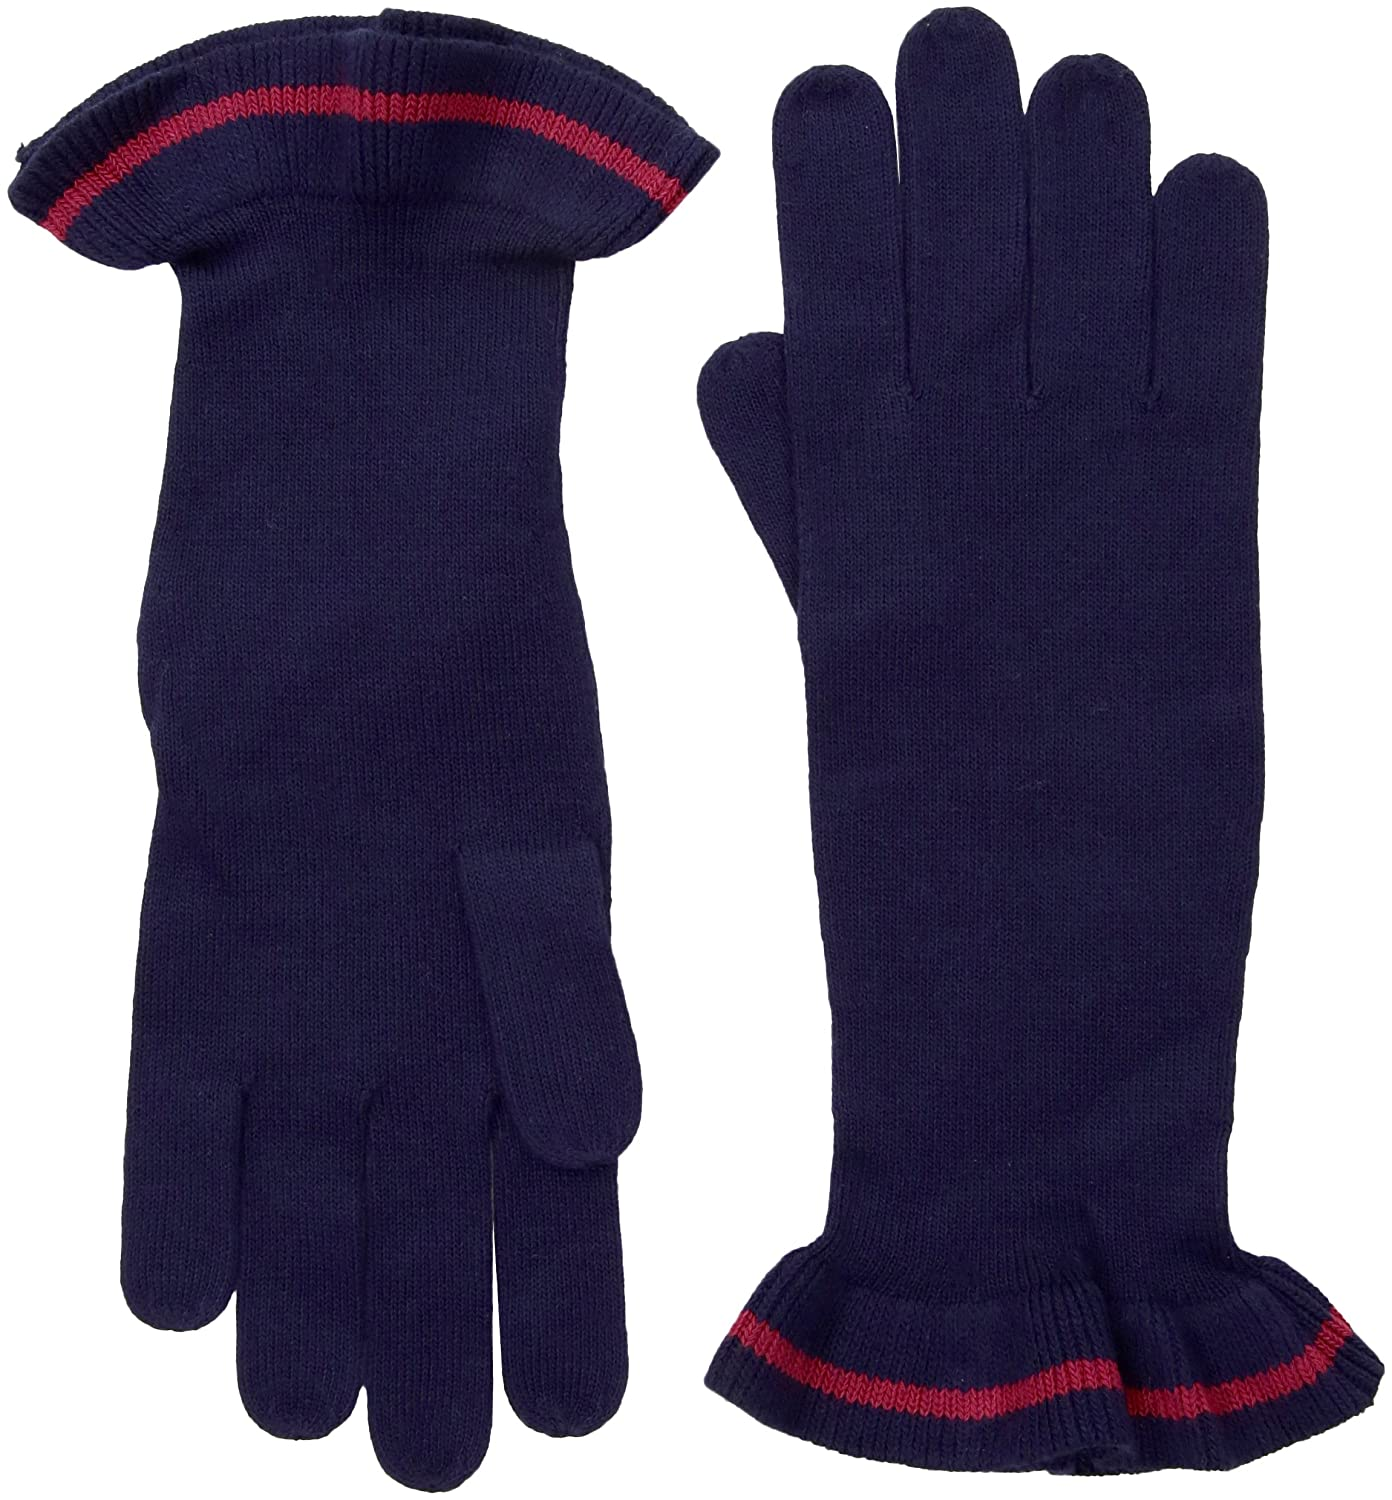 A|X Armani Exchange Women's Knit Glove with Single Stripe Ruffle Trim 6YY483YMF8Z1501